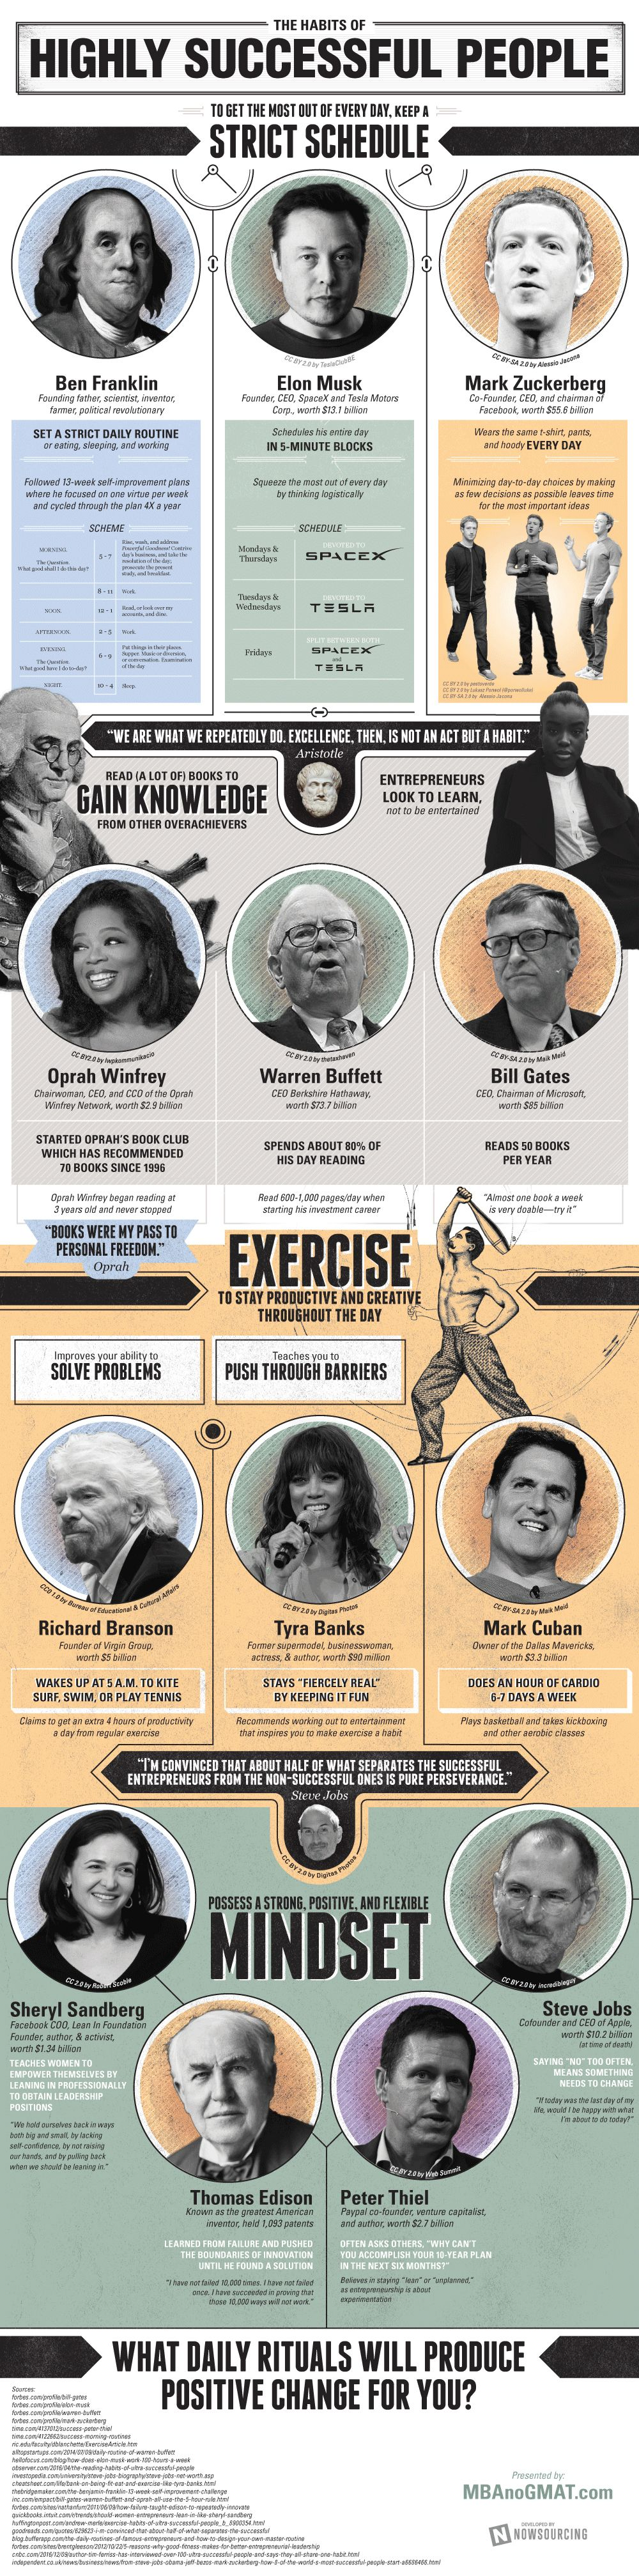 The habits of highly successful entrepreneurs how do you compare